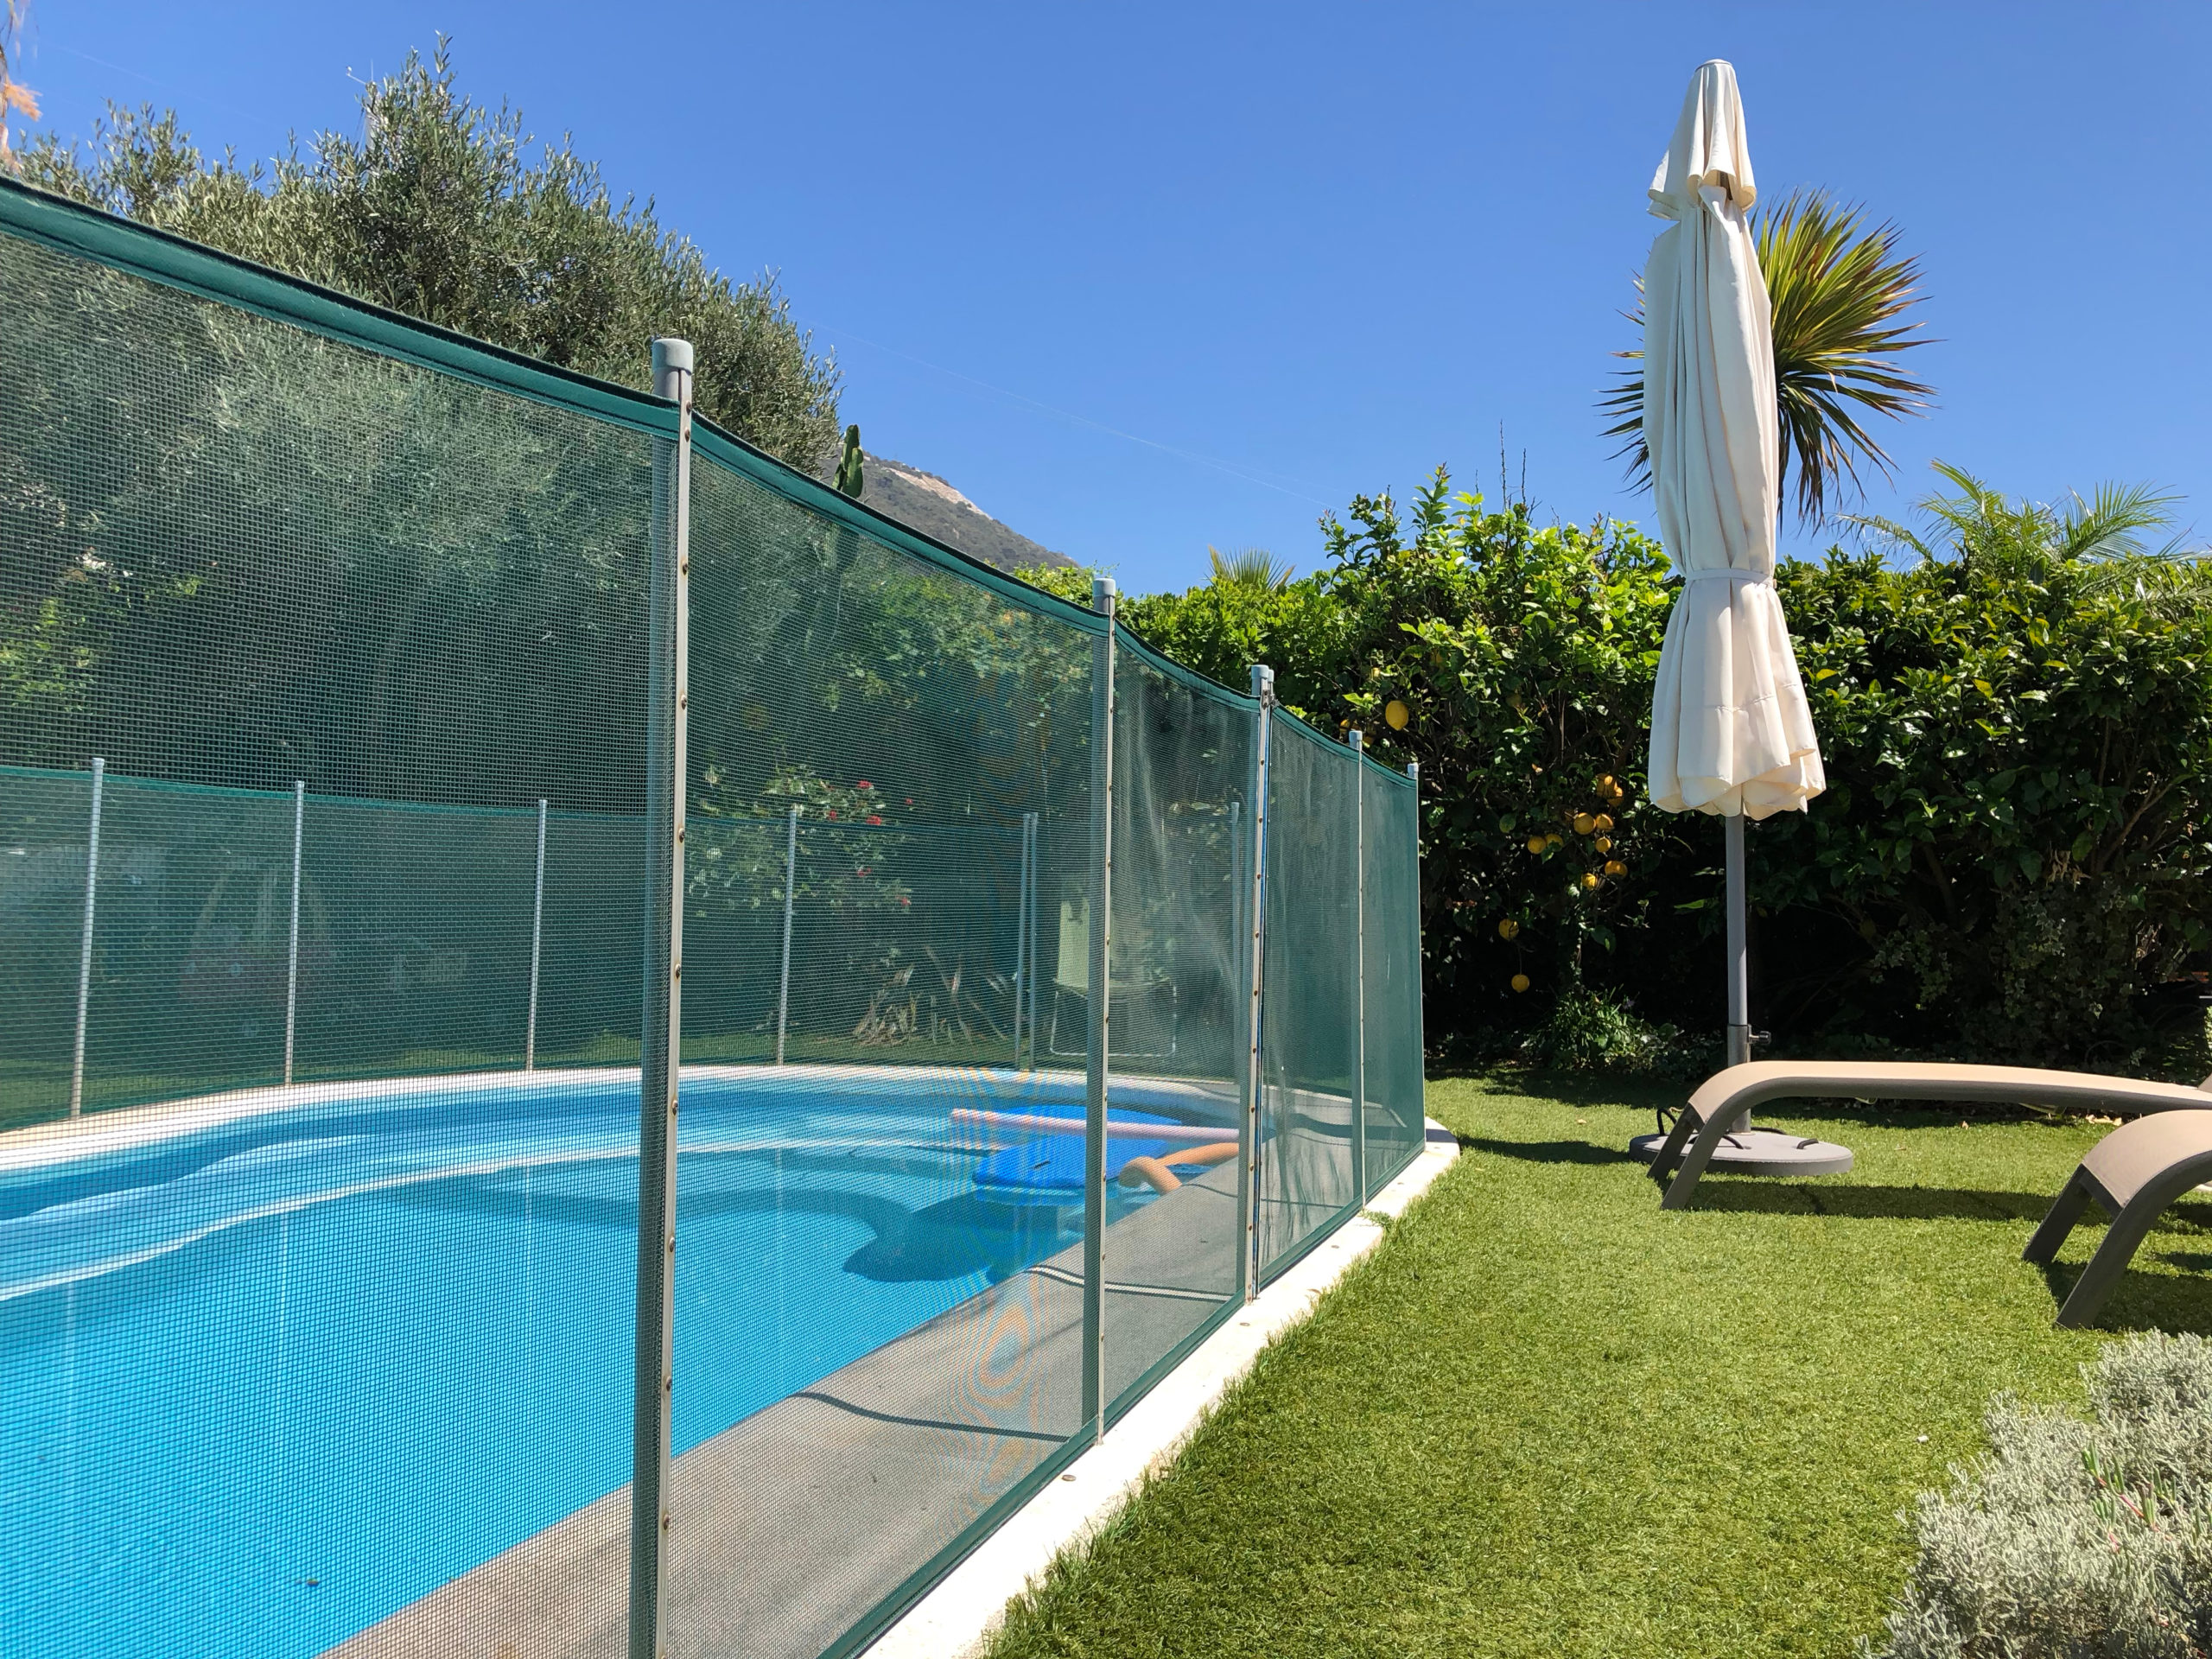 swimming pool electrical safety guide